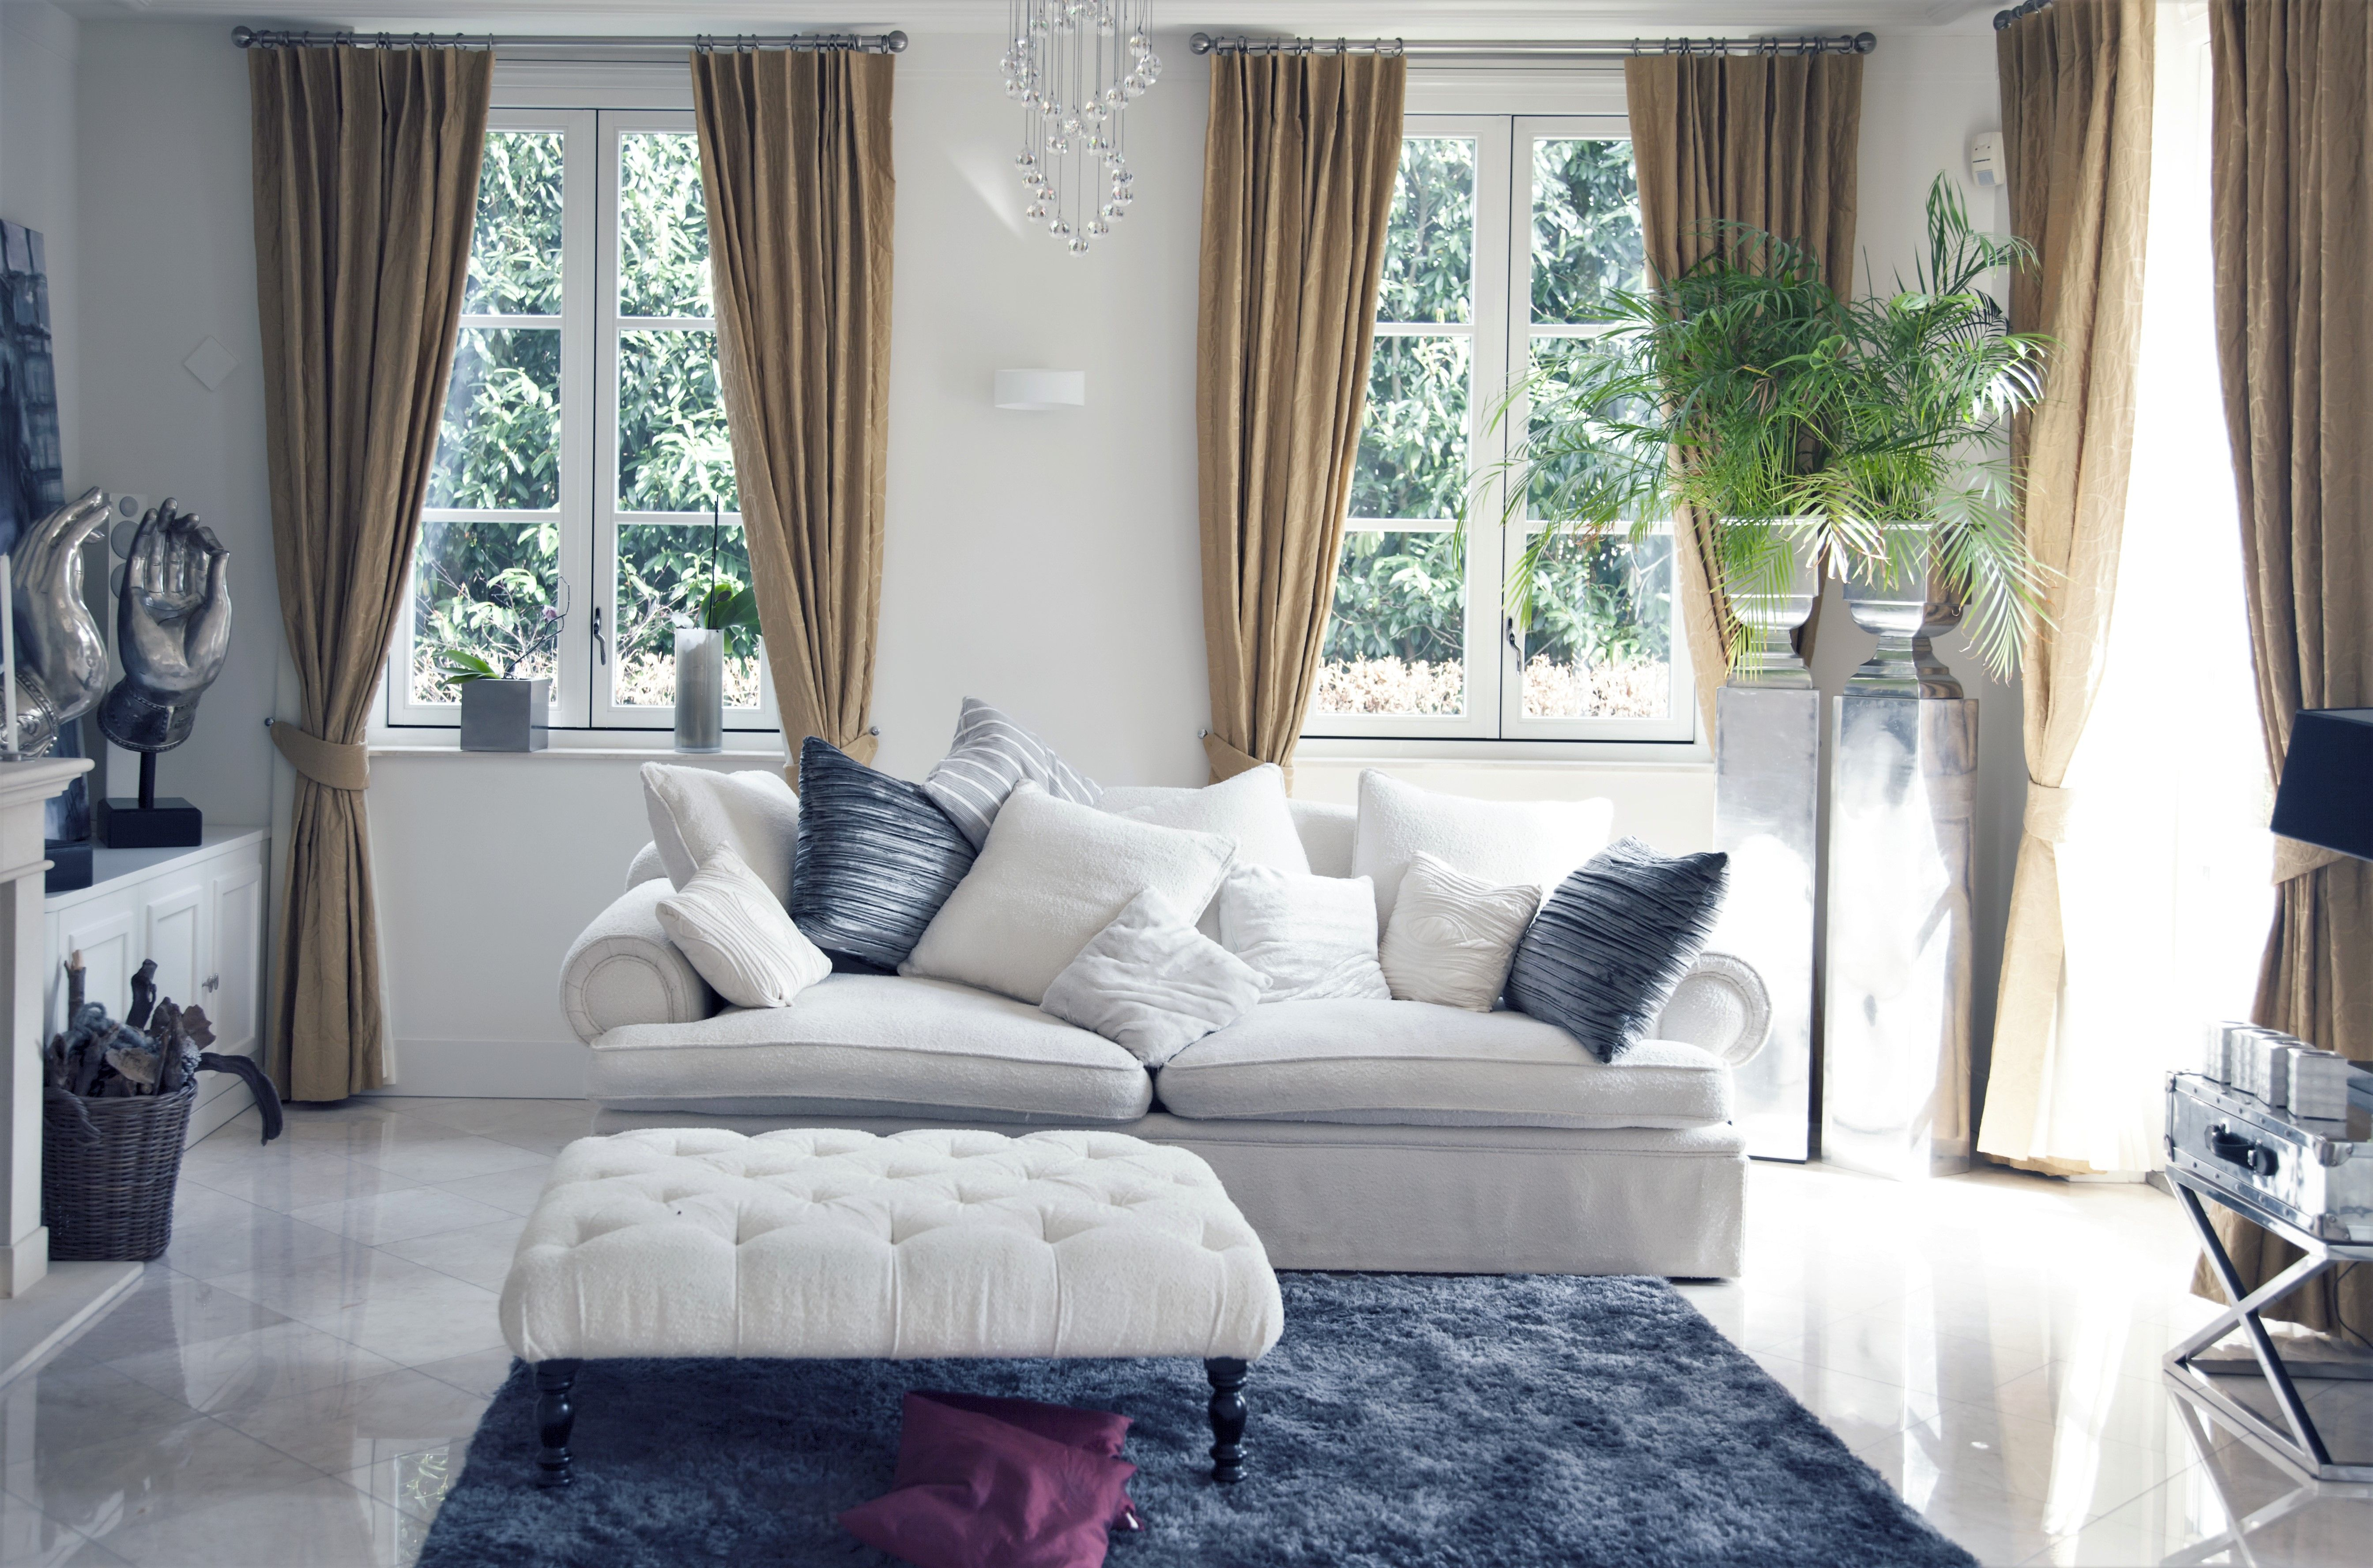 Delightfully curated! Luv the gathering of cushions